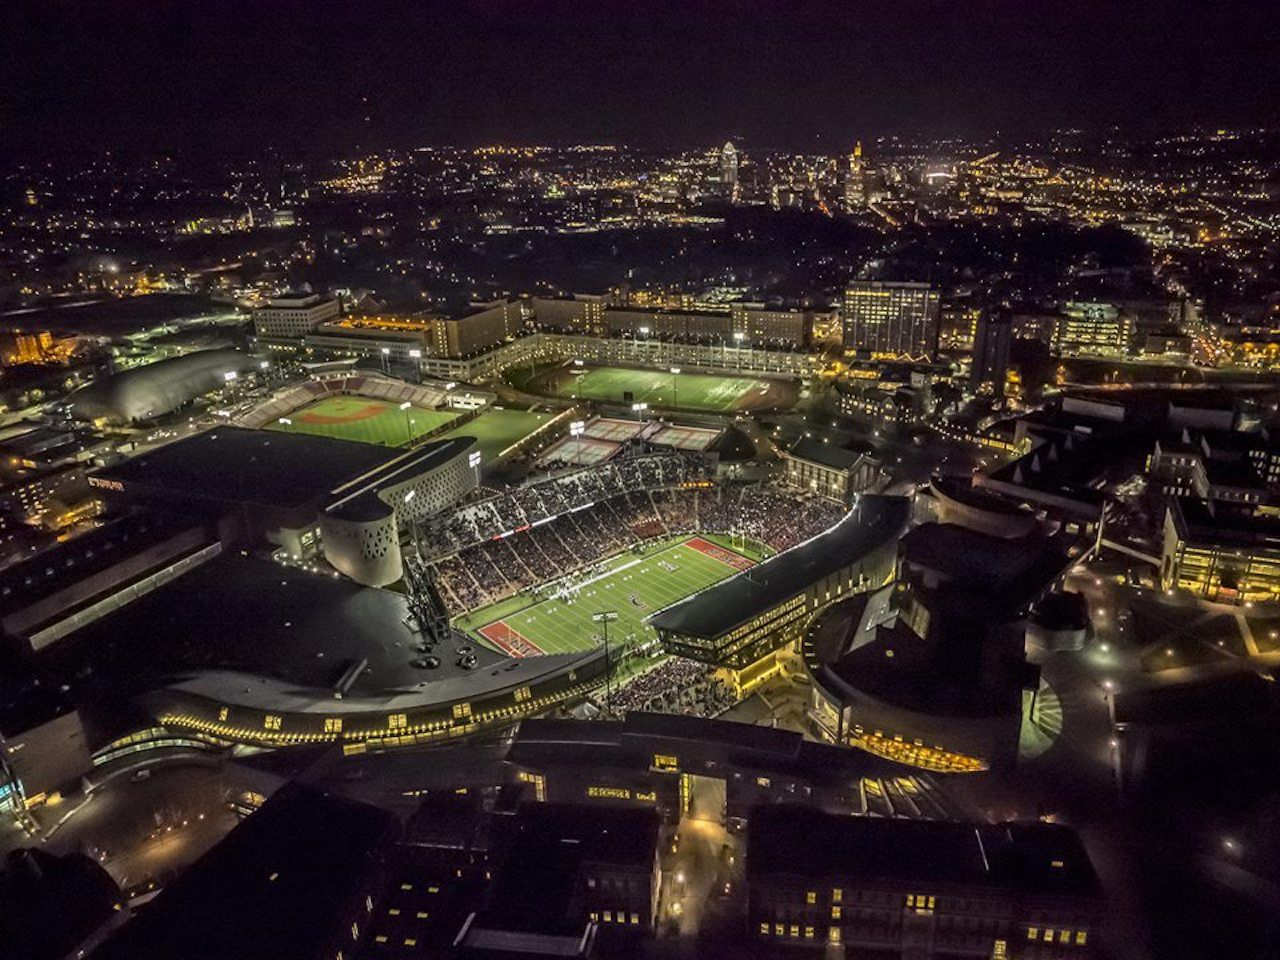 University of Cincinnati football field and cityscape at night